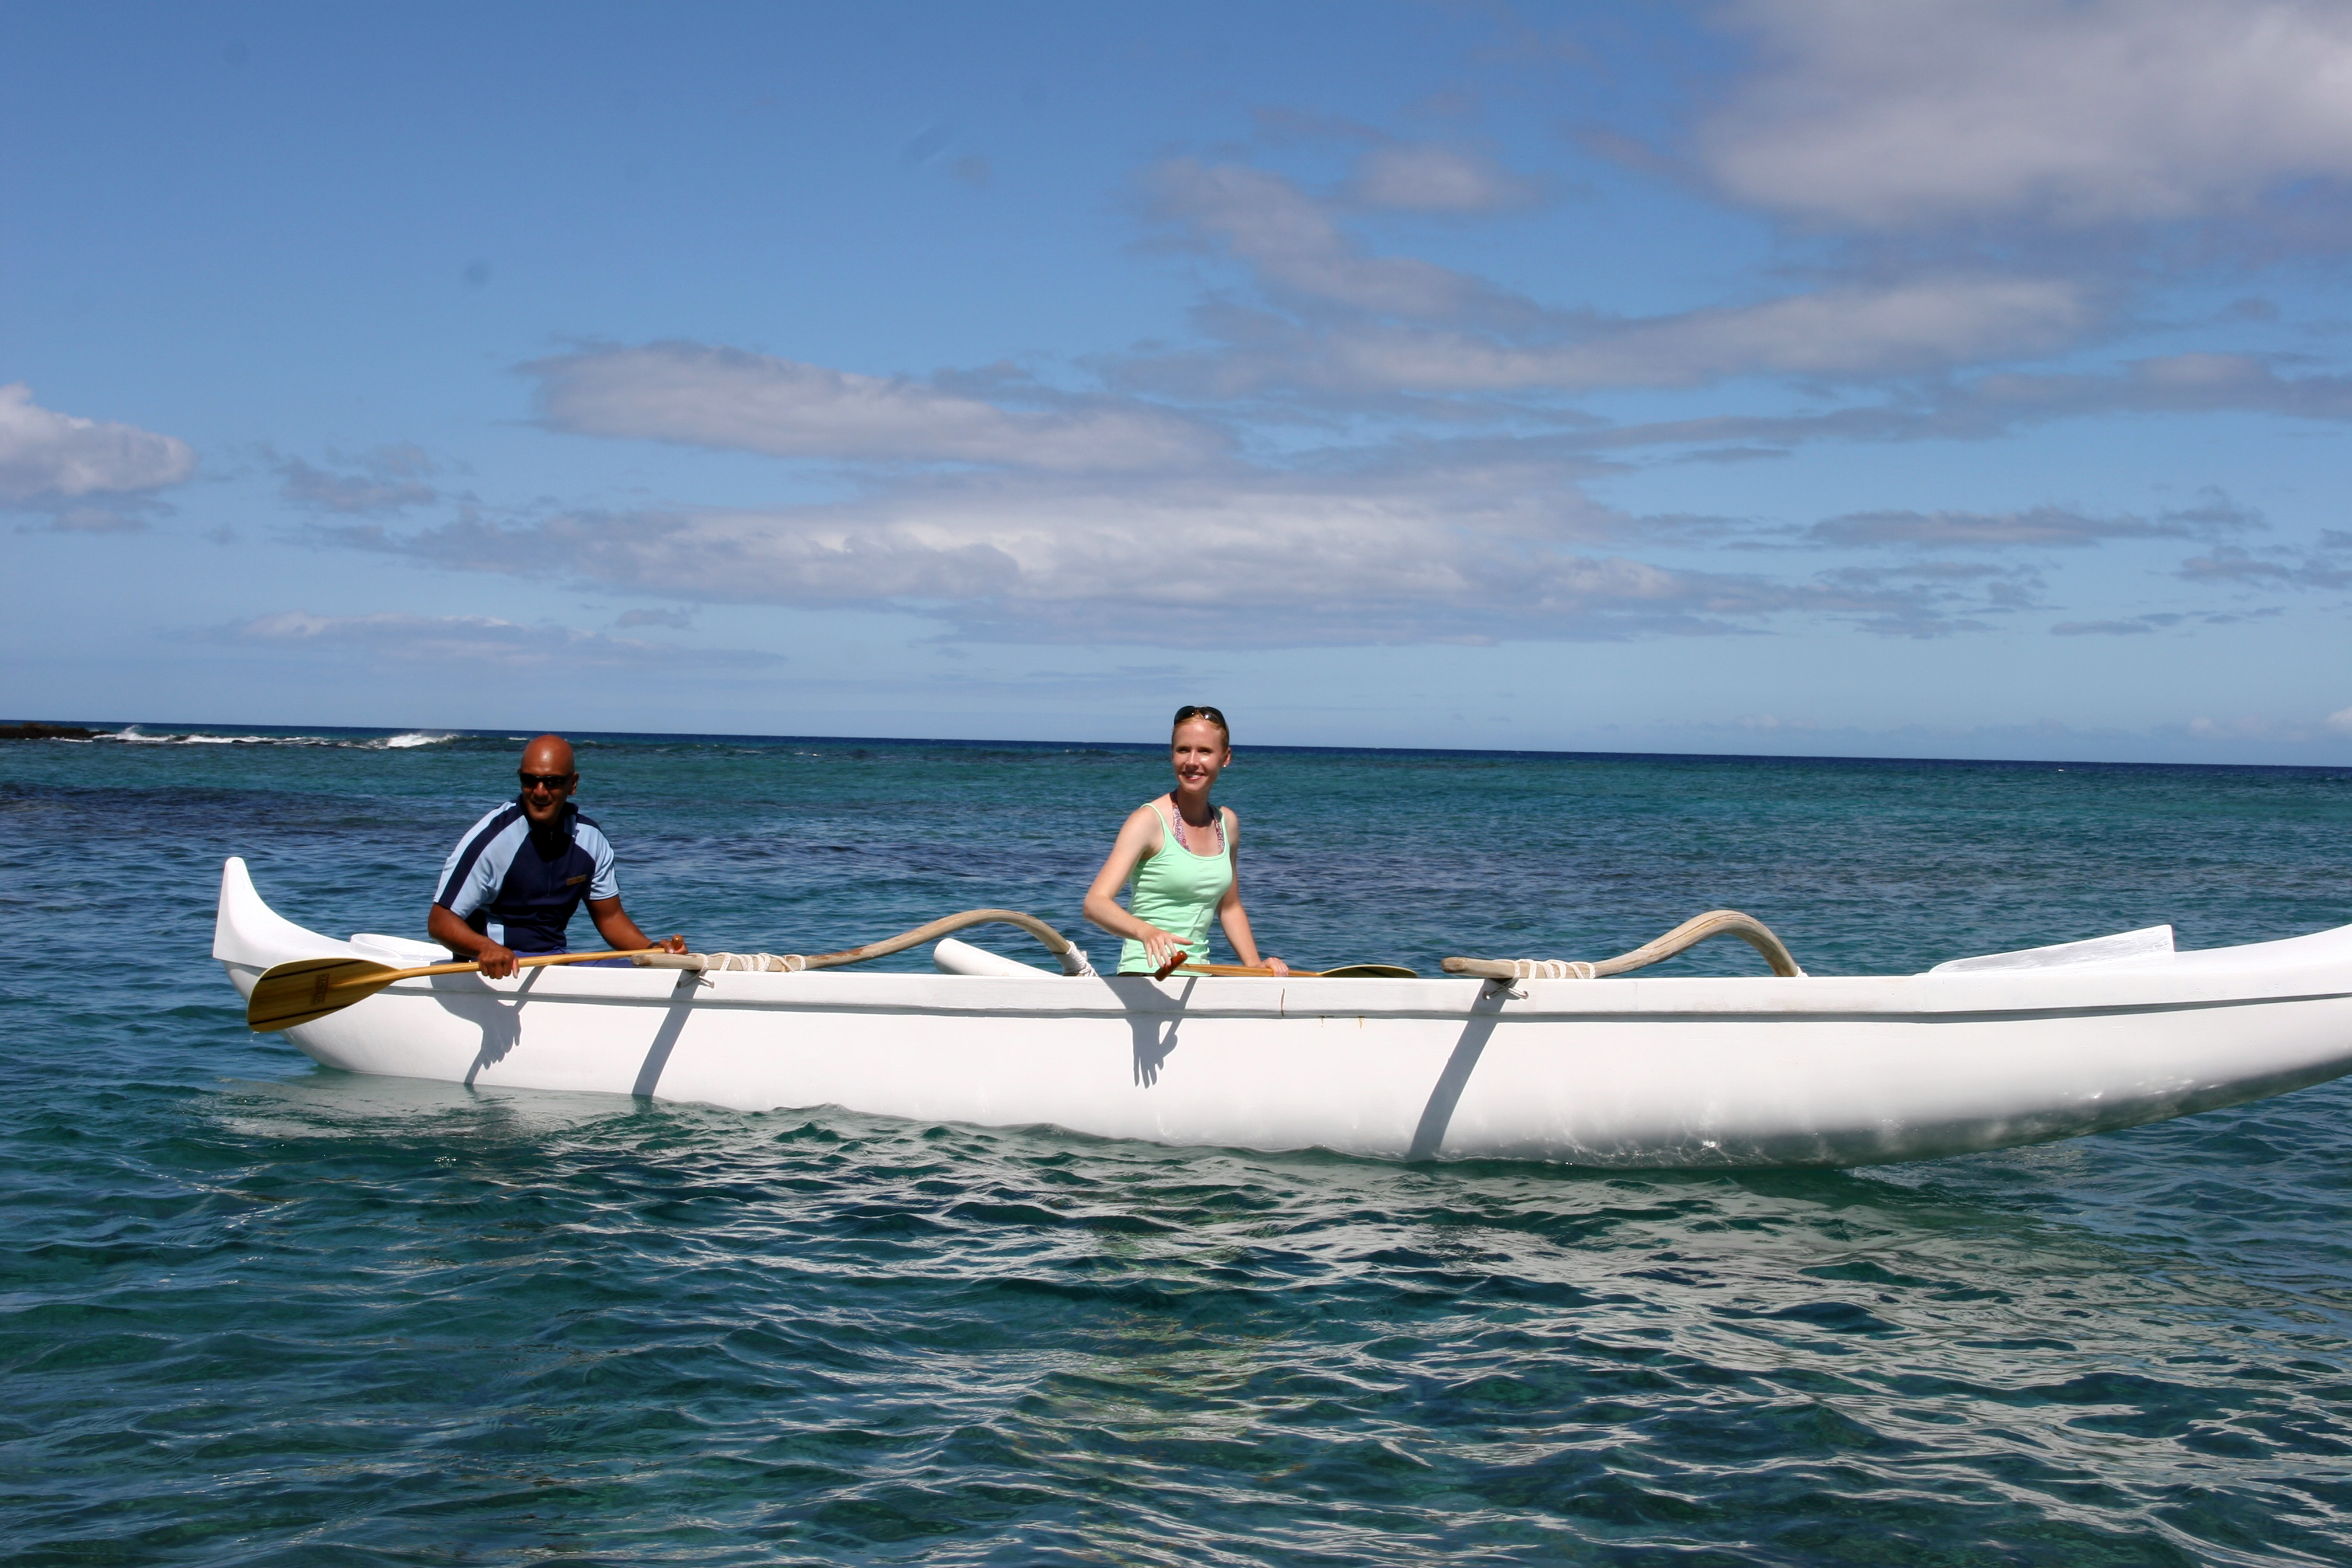 Host Darley Newman learns about outrigger canoeing with Elton Cabrera during the filming of Equitrekking Hawaii's Big Island.